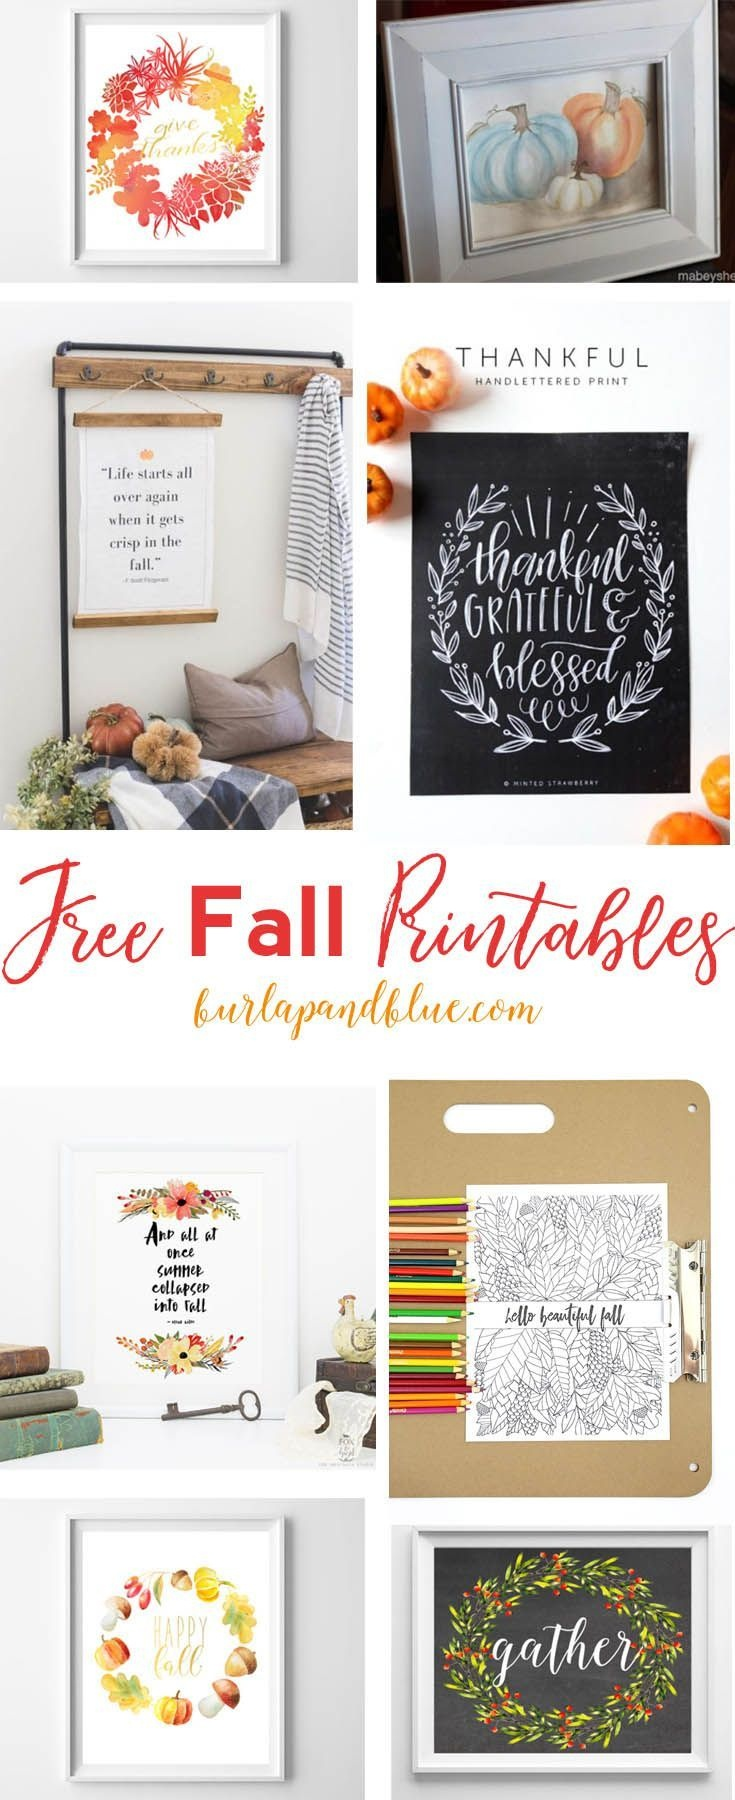 Fall Art And Free Printables   Diy For The Home   Fall Home Decor - Free Printables For Home Decor